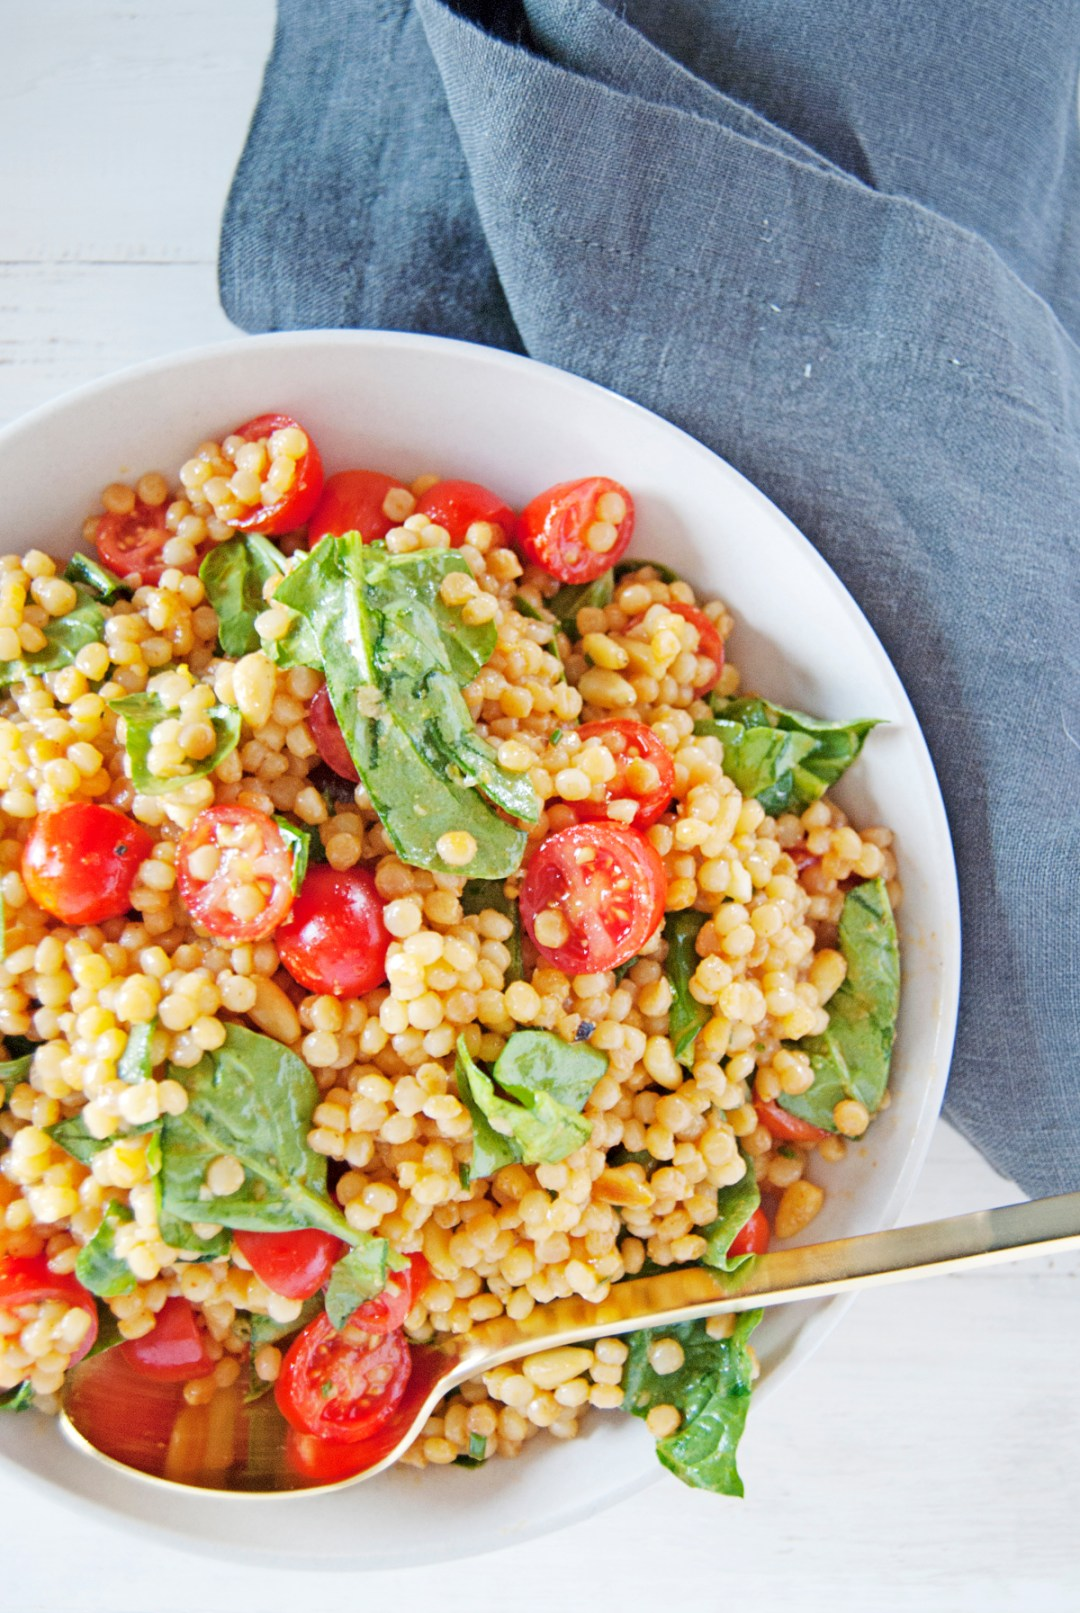 This toasted pearl couscous salad is cooked with paprika and features a refreshing lemon and Dijon mustard vinaigrette, cherry tomatoes, and spinach.